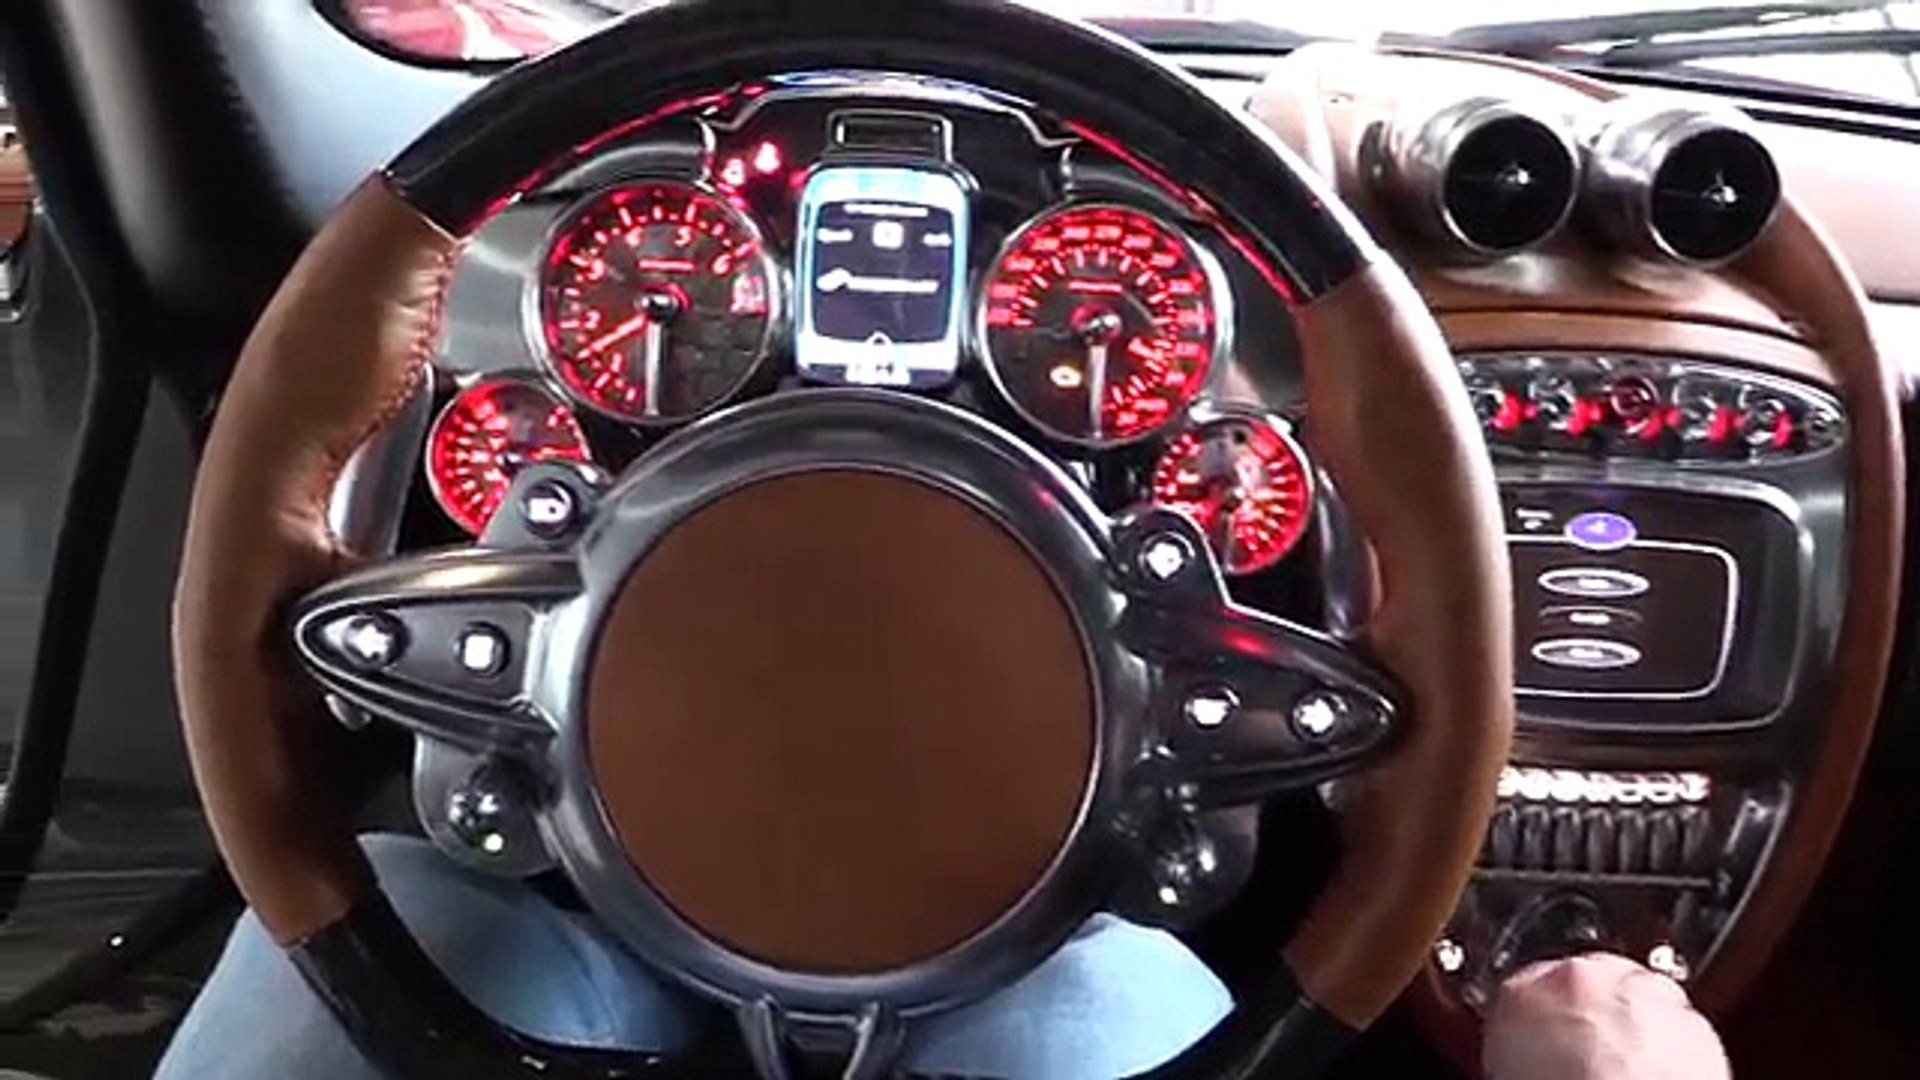 Inside The Pagani Huayra In Depth Review Interior Exterior Sound 影片 Dailymotion